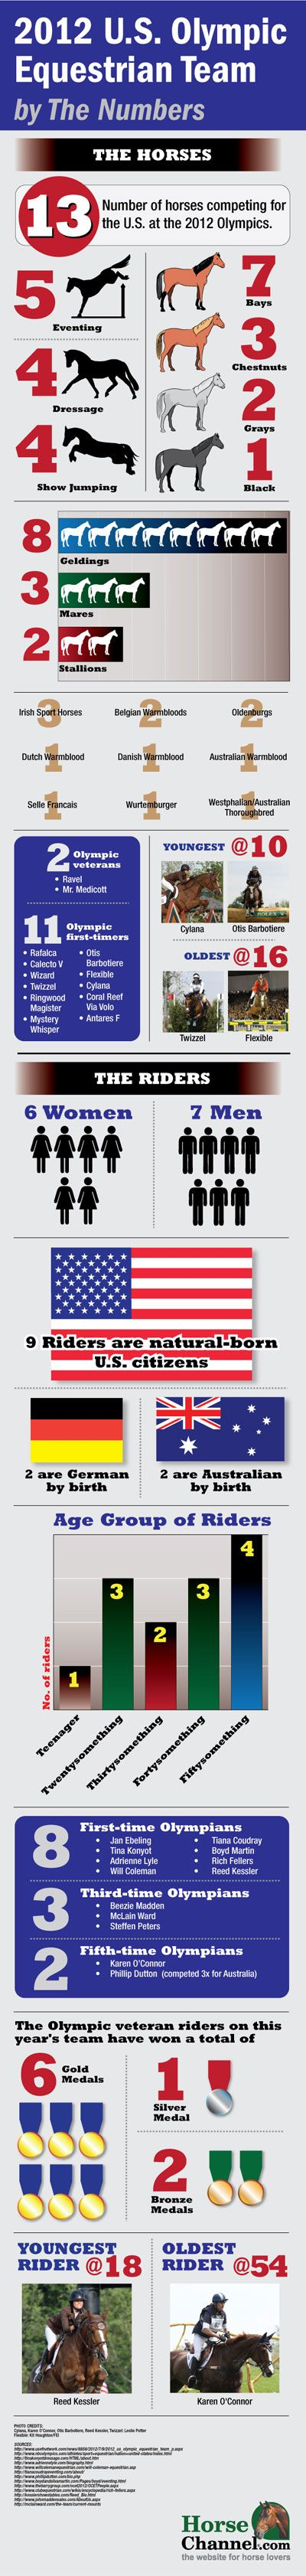 2012 U.S. Olympic Equestrian Team by the Numbers - HorseChannel.com